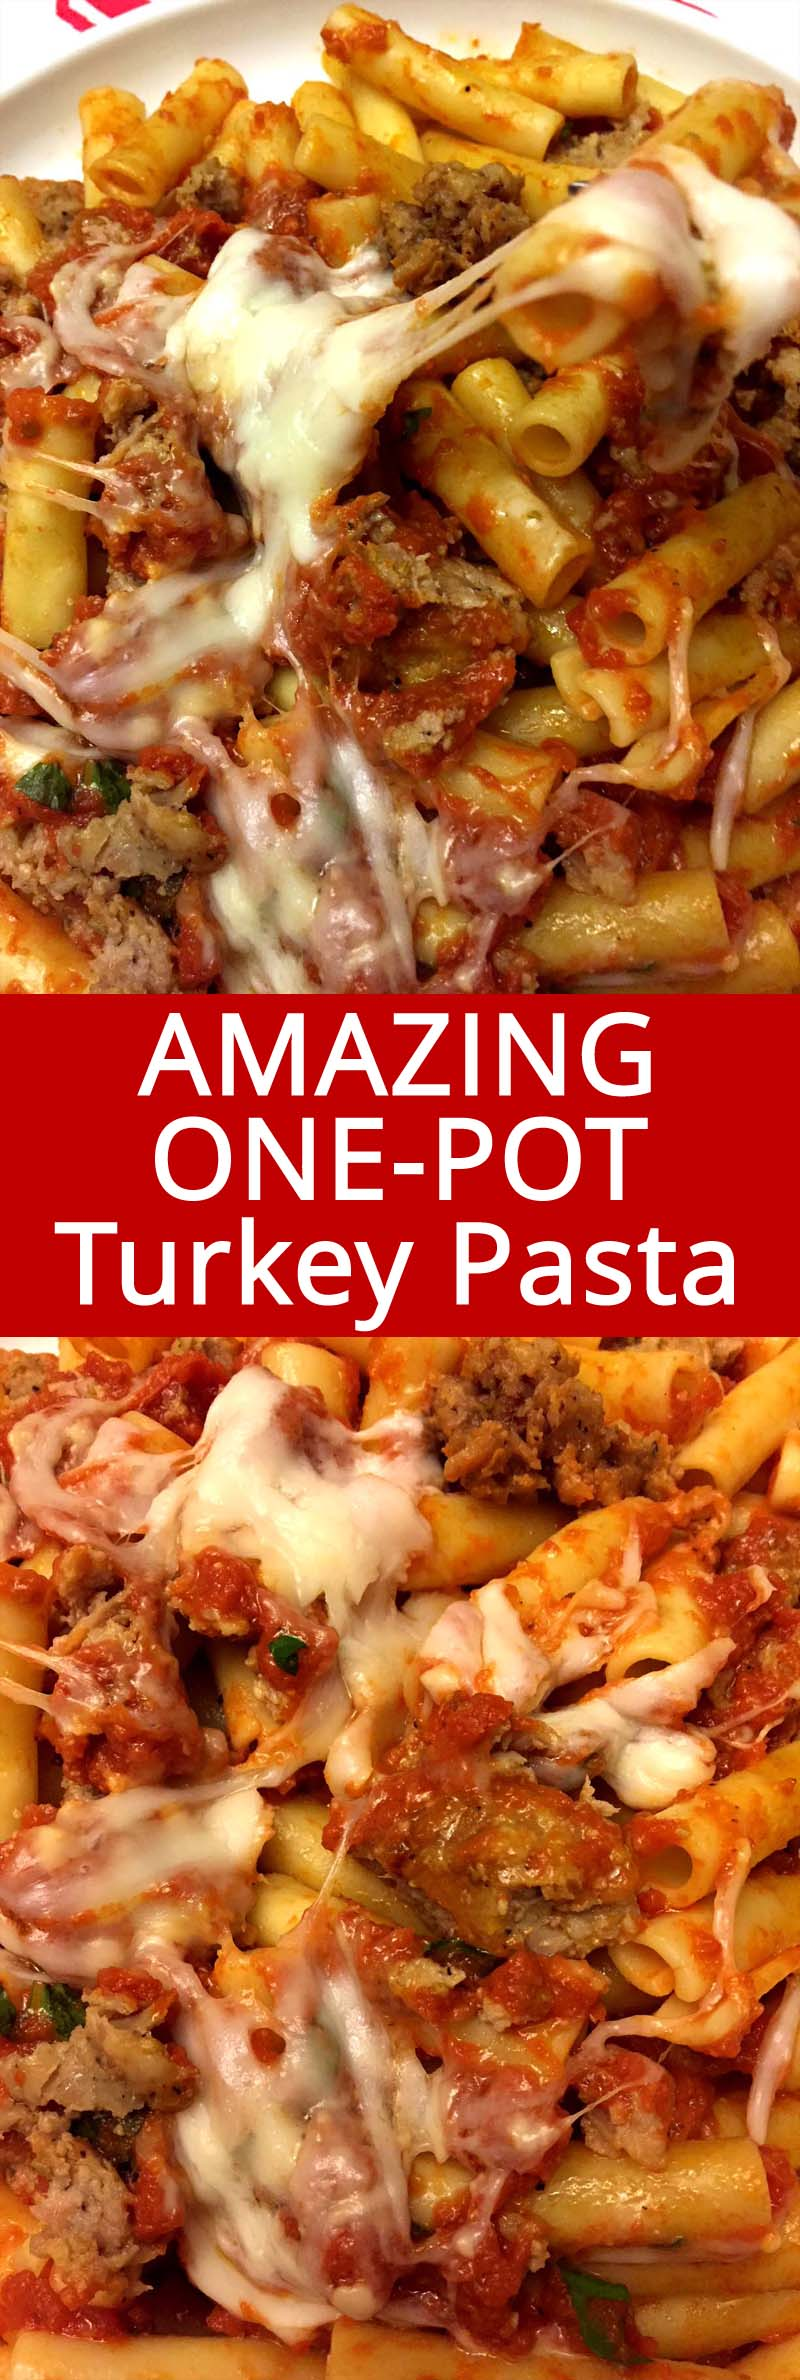 This one turkey pasta recipe is amazing! You can make it with ground turkey or beef, it's so easy to make and so yummy with melted cheese! I love this one pot pasta!